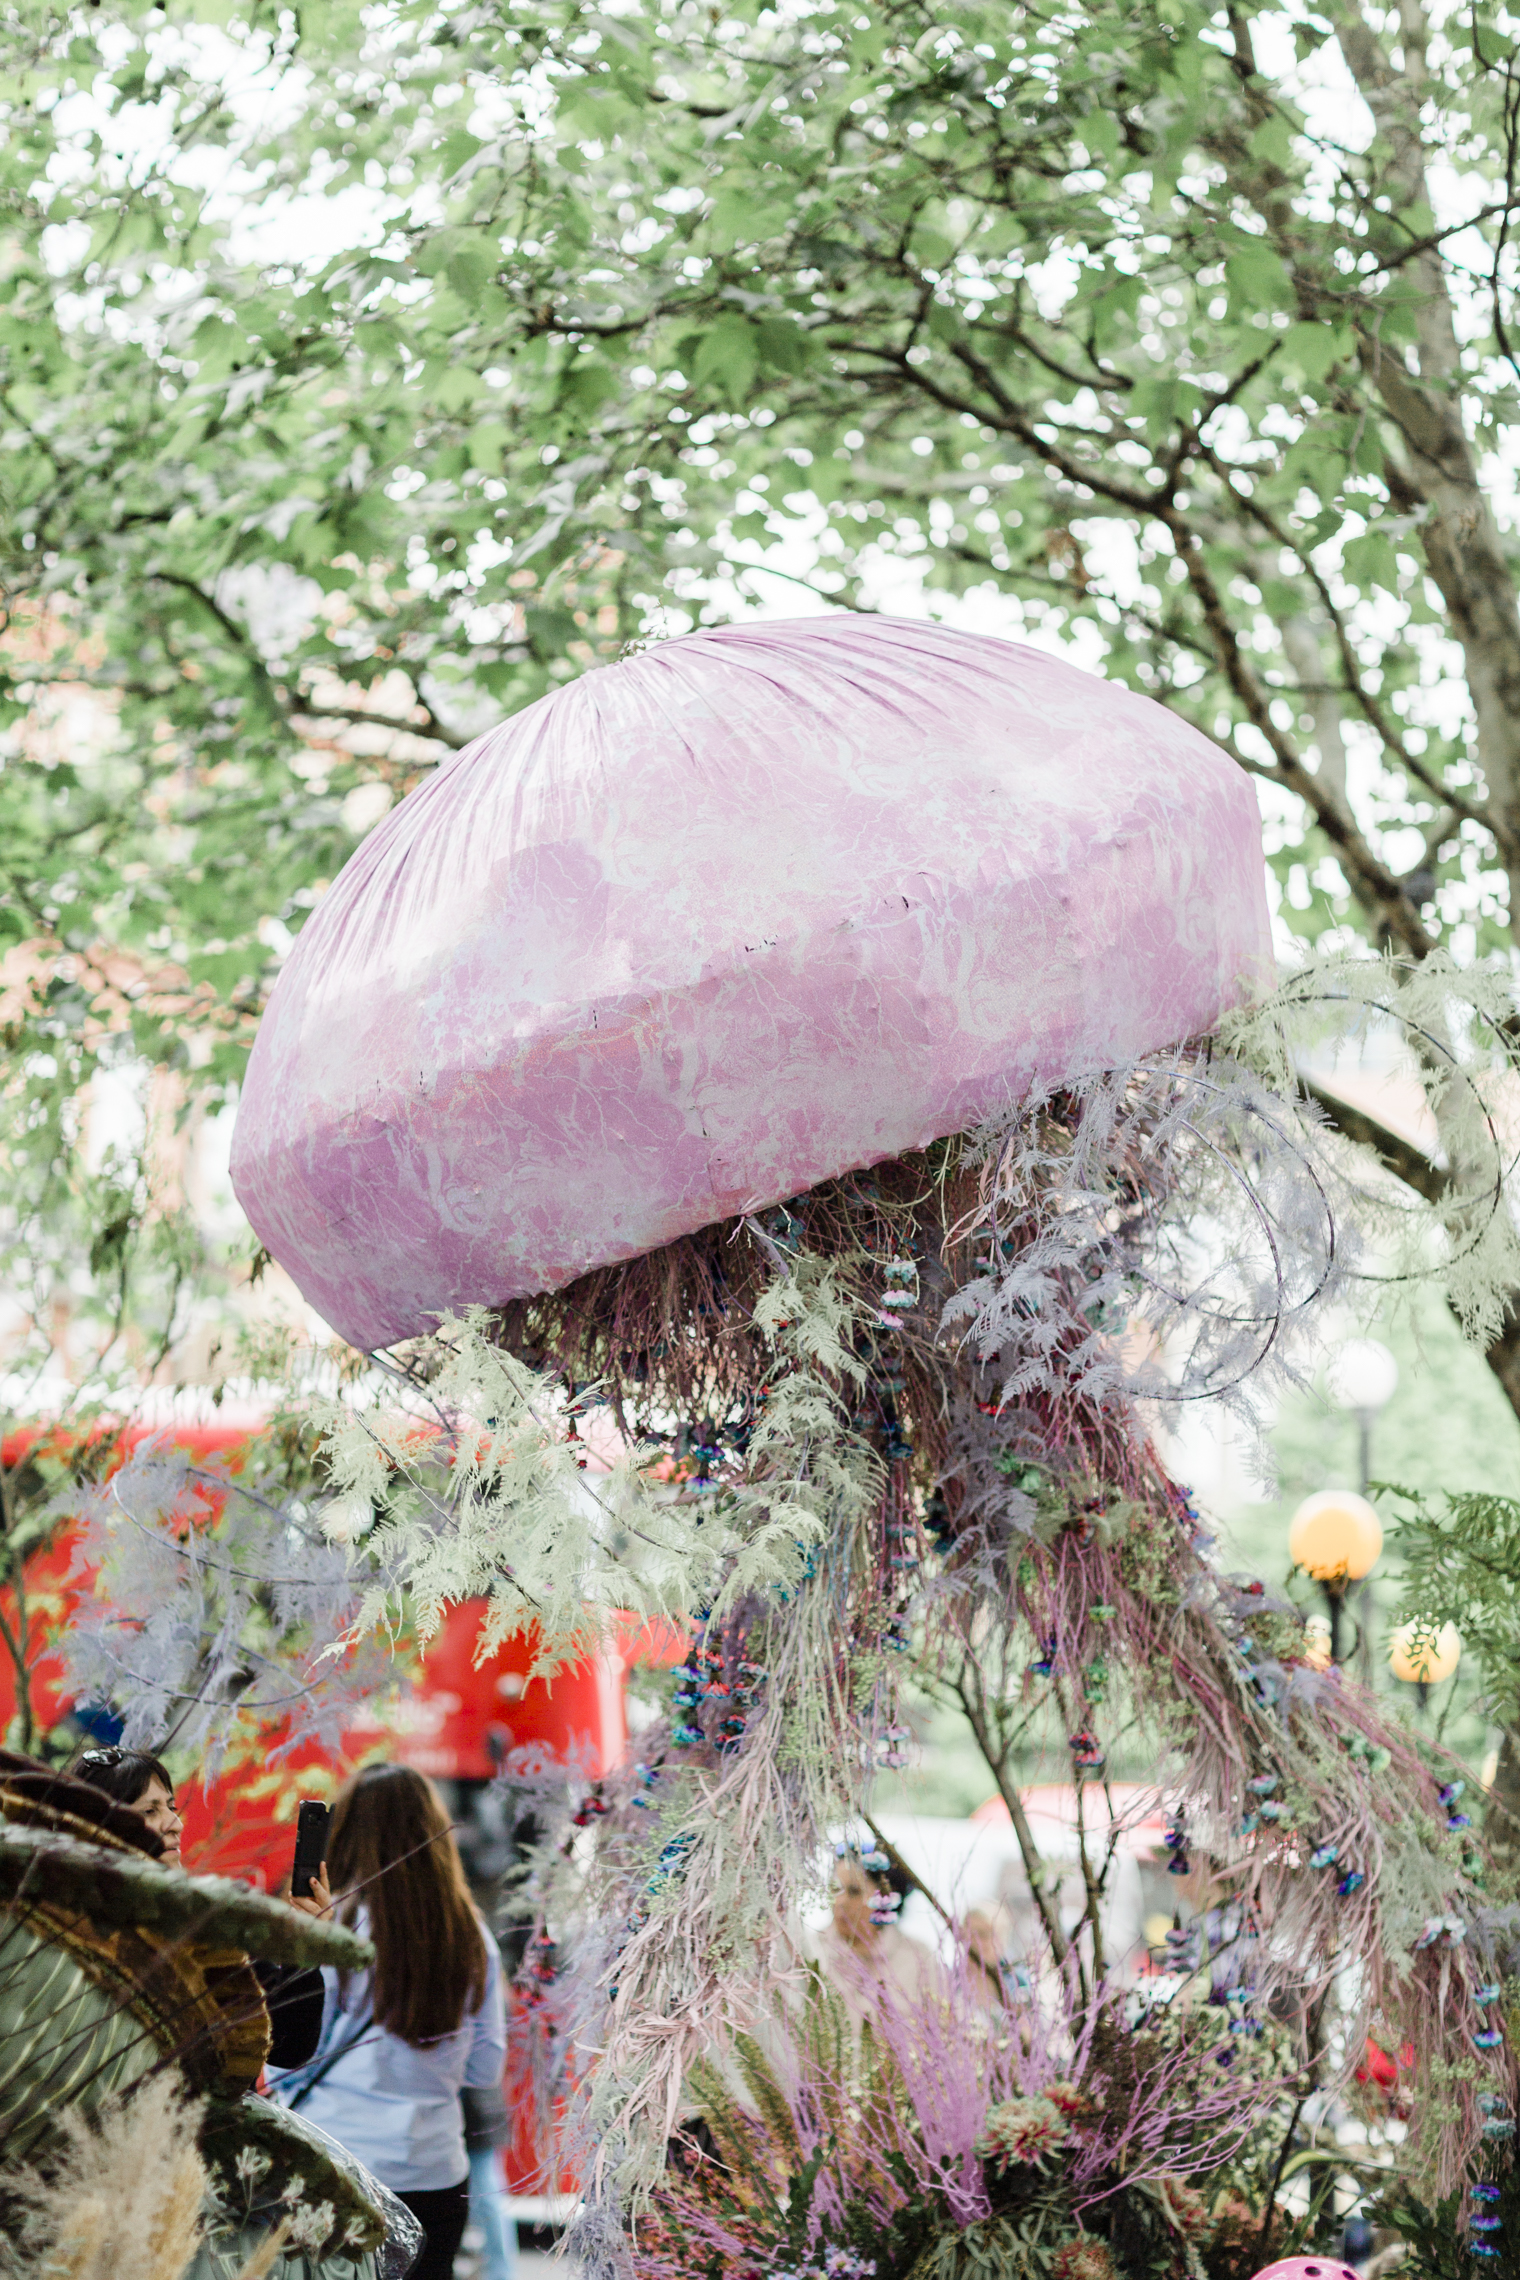 Jellyfish by All for Love London for Chelsea in Bloom 2019